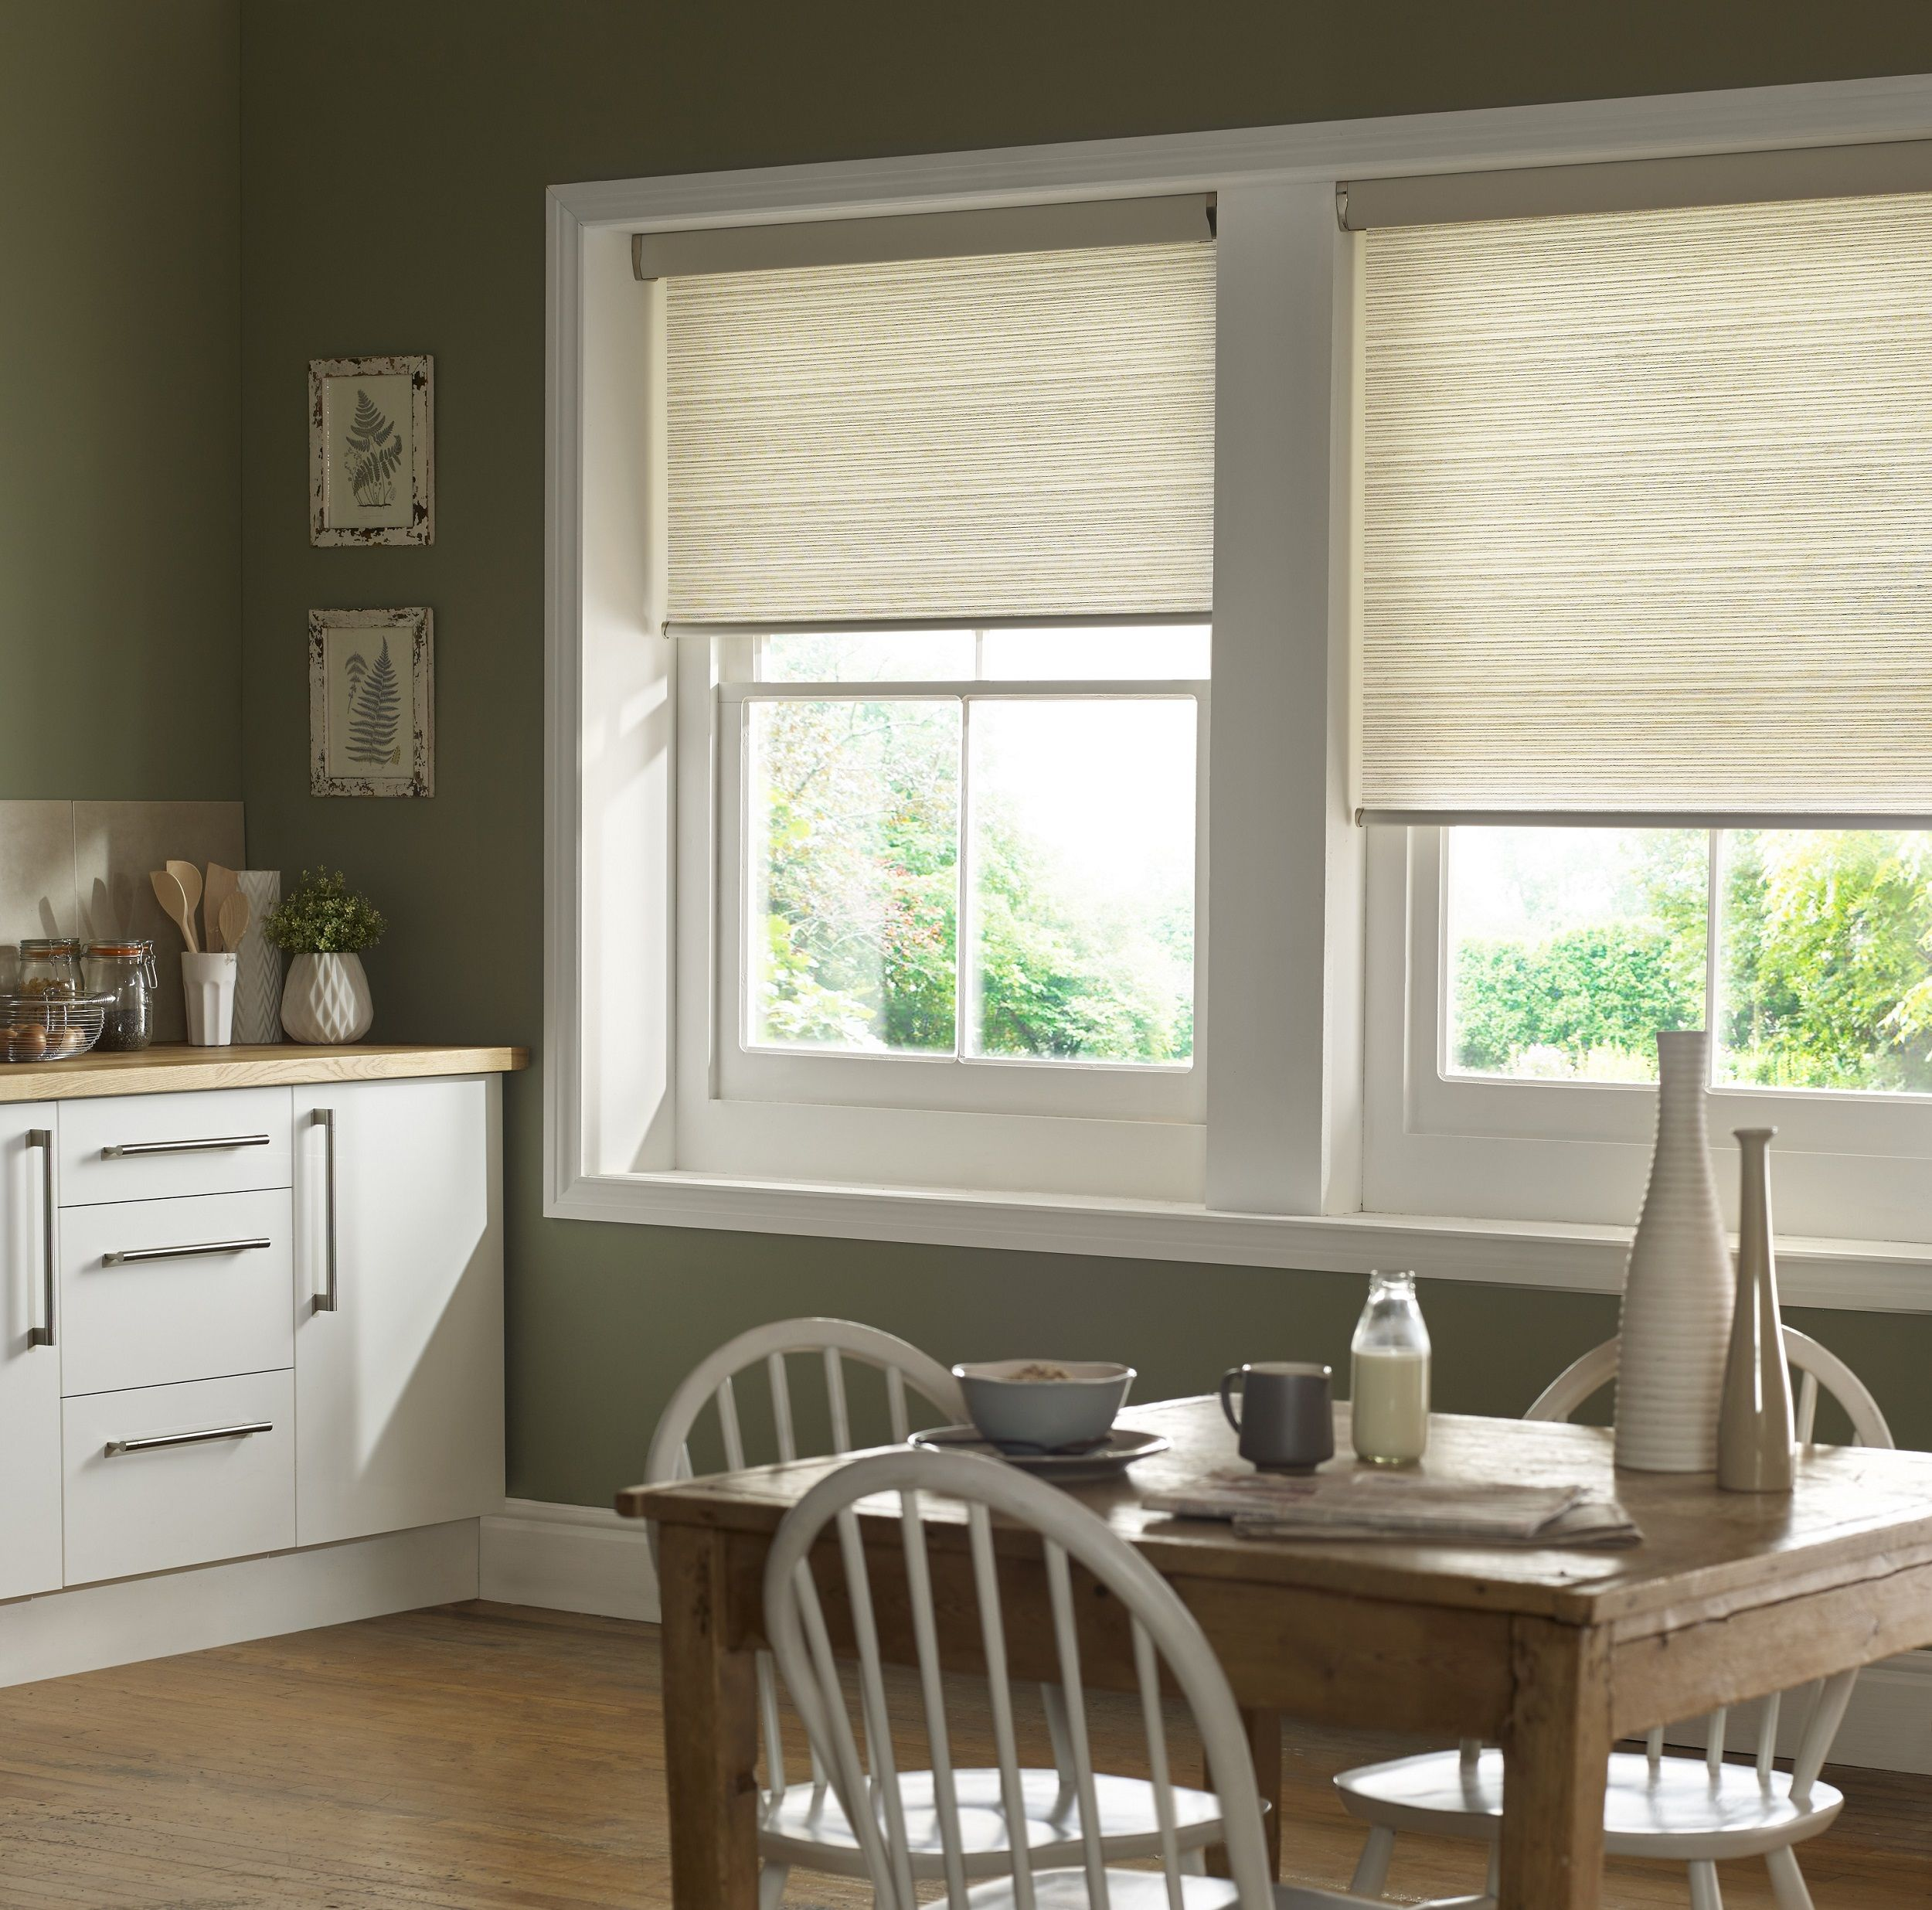 Kassala Emerald Kitchen Roller Blind From Style Studio Spring Home